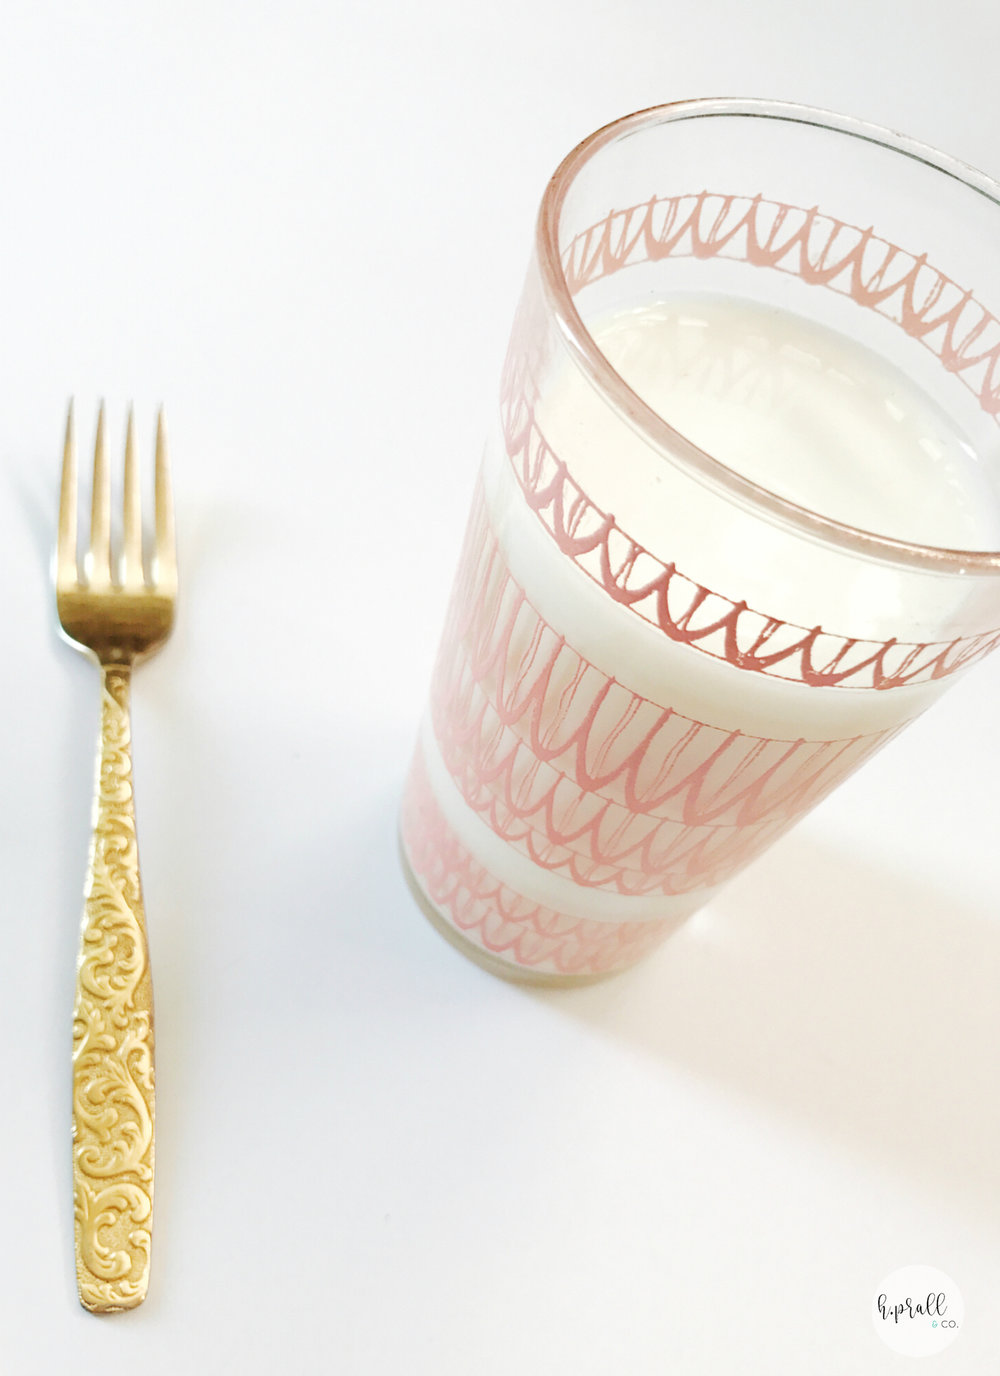 Glass of milk and a gold fork to go with Triple Layer Chocolate Cake | Interior Decorating Blog hprallandco.com